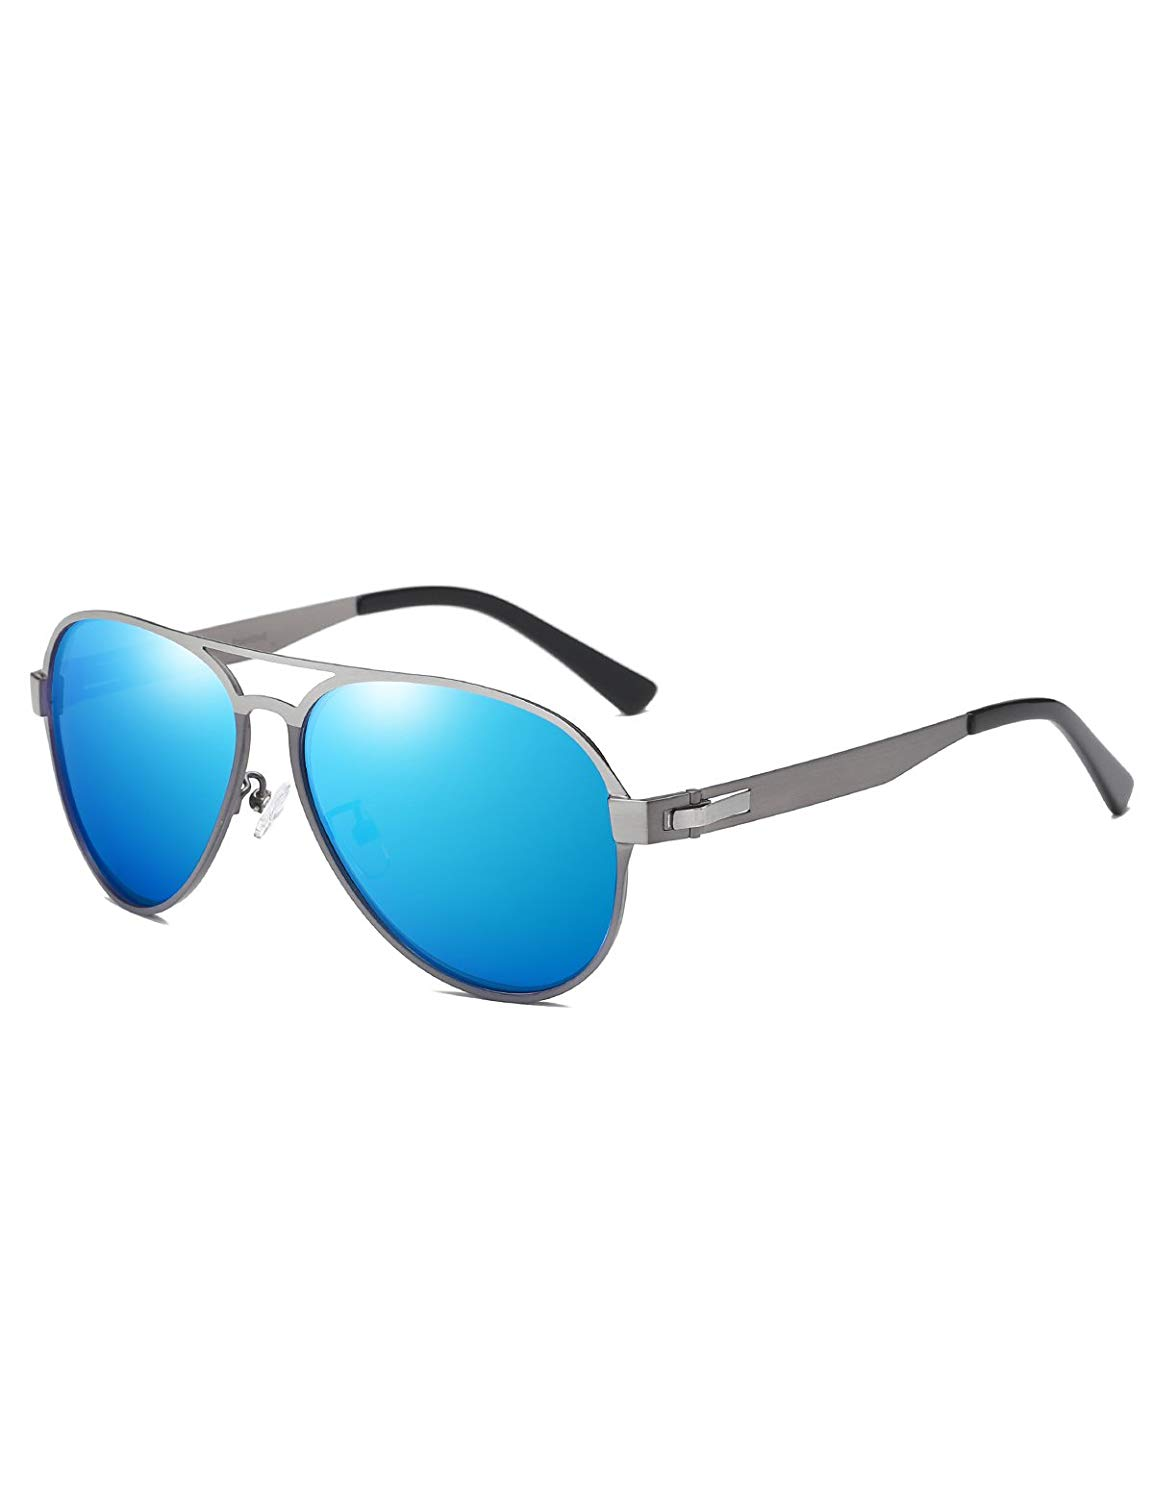 b2510b1459 Get Quotations · DUCO Aviator Metal Frame Sunglasses for Men 100% UV  Protection by UV 400 Coated Protection